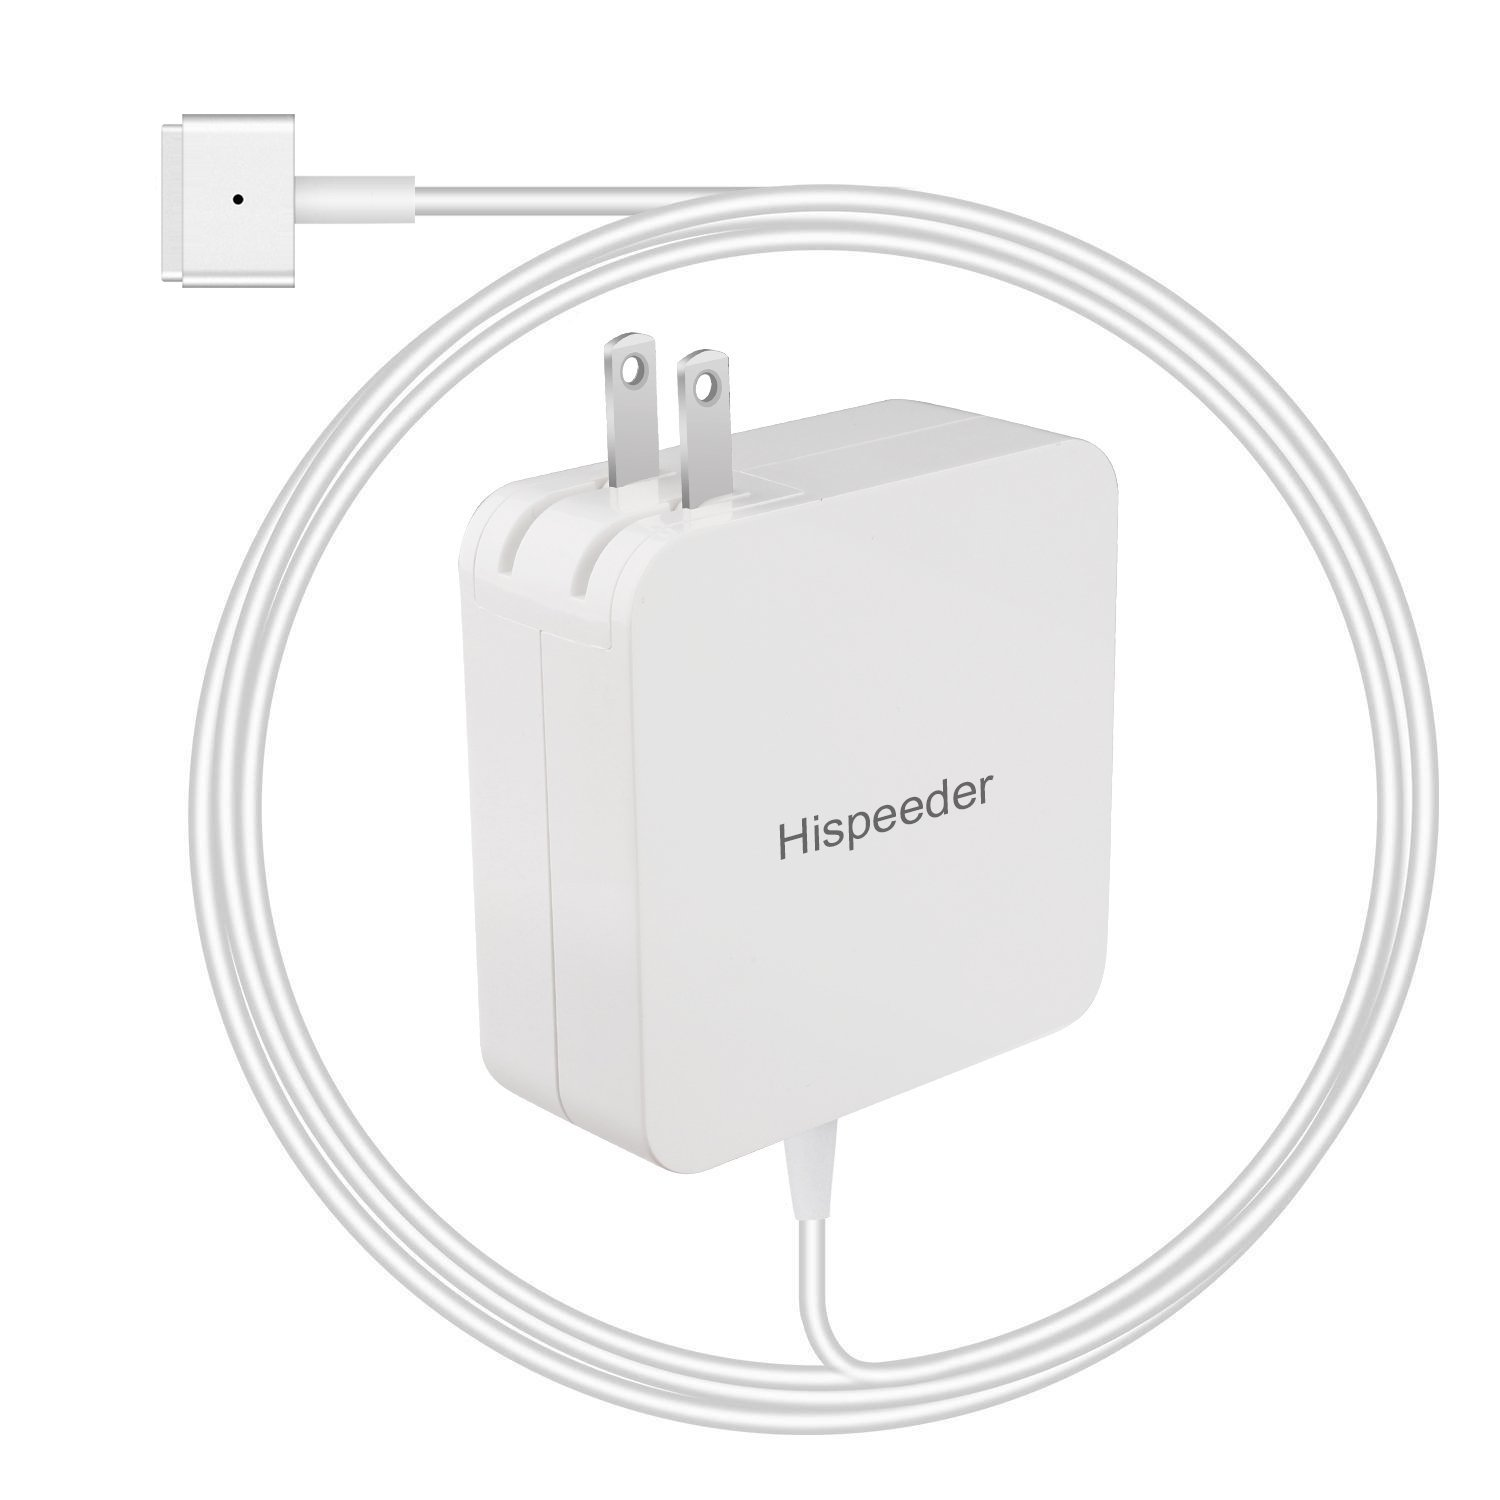 Cheap A1184 Macbook Charger Find Deals On Adaptor Magsafe 60w Power Adapter For Apple Pro 13 A1181 A1278 A1330 A1344 Get Quotations Hispeeder Charger60w T Tip Ac Compatible With